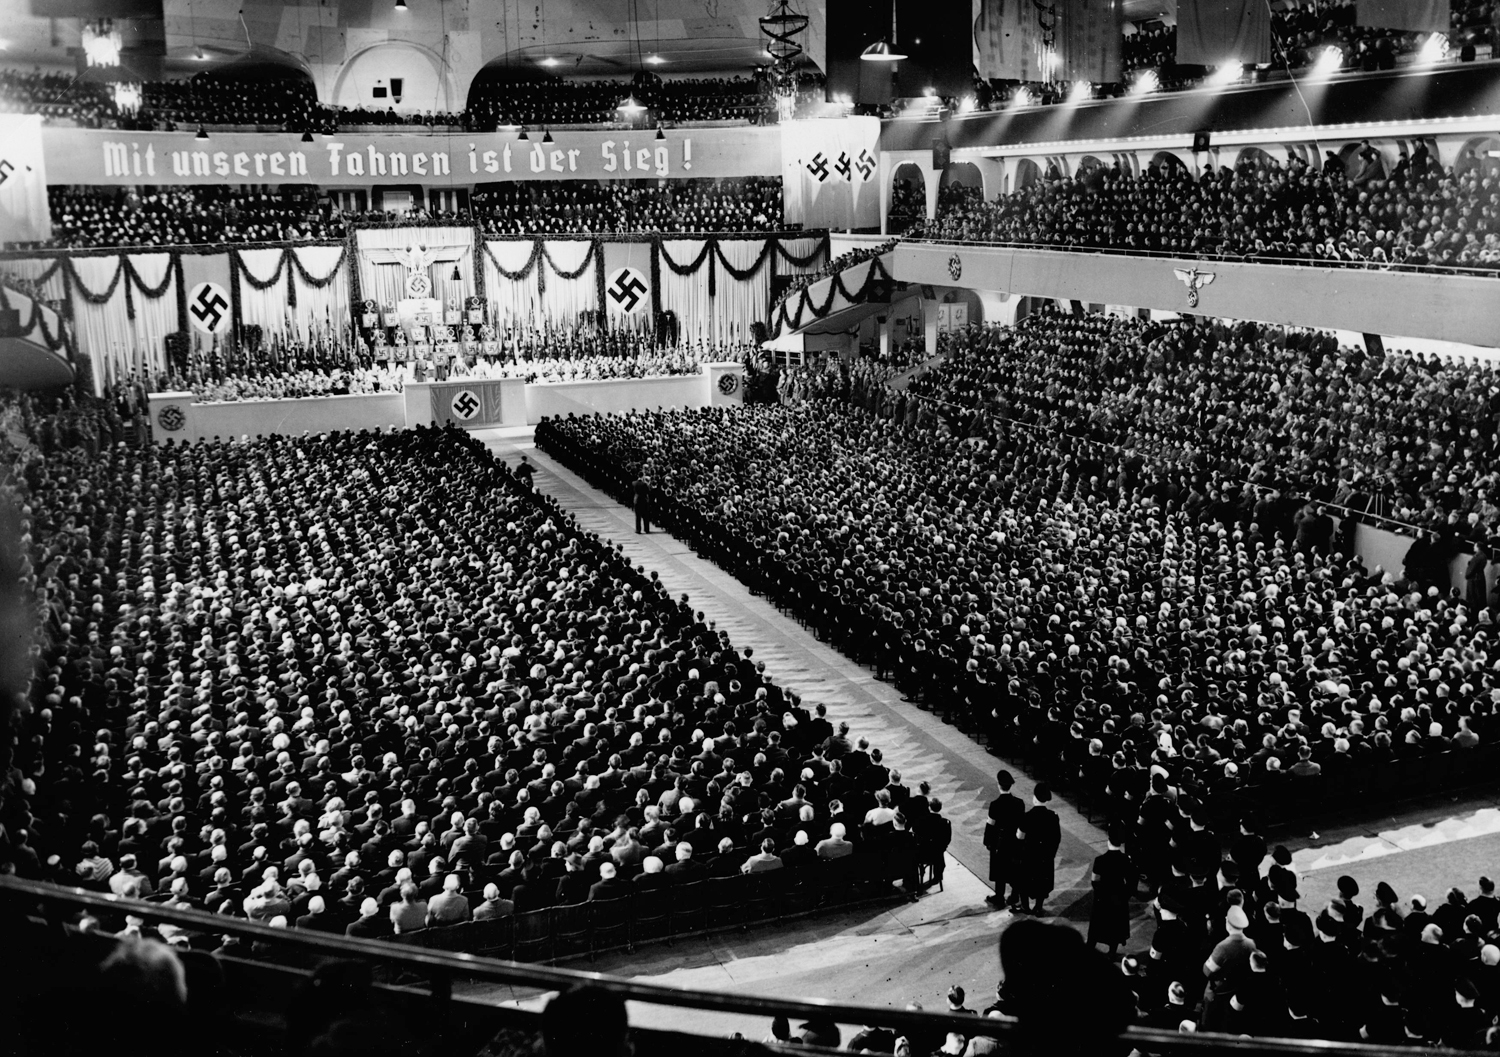 Adolf Hitler makes a speech at Berlin's Sportpalast on the occasion of the Machtergreifung (anniversary of the NSDAP takeover)